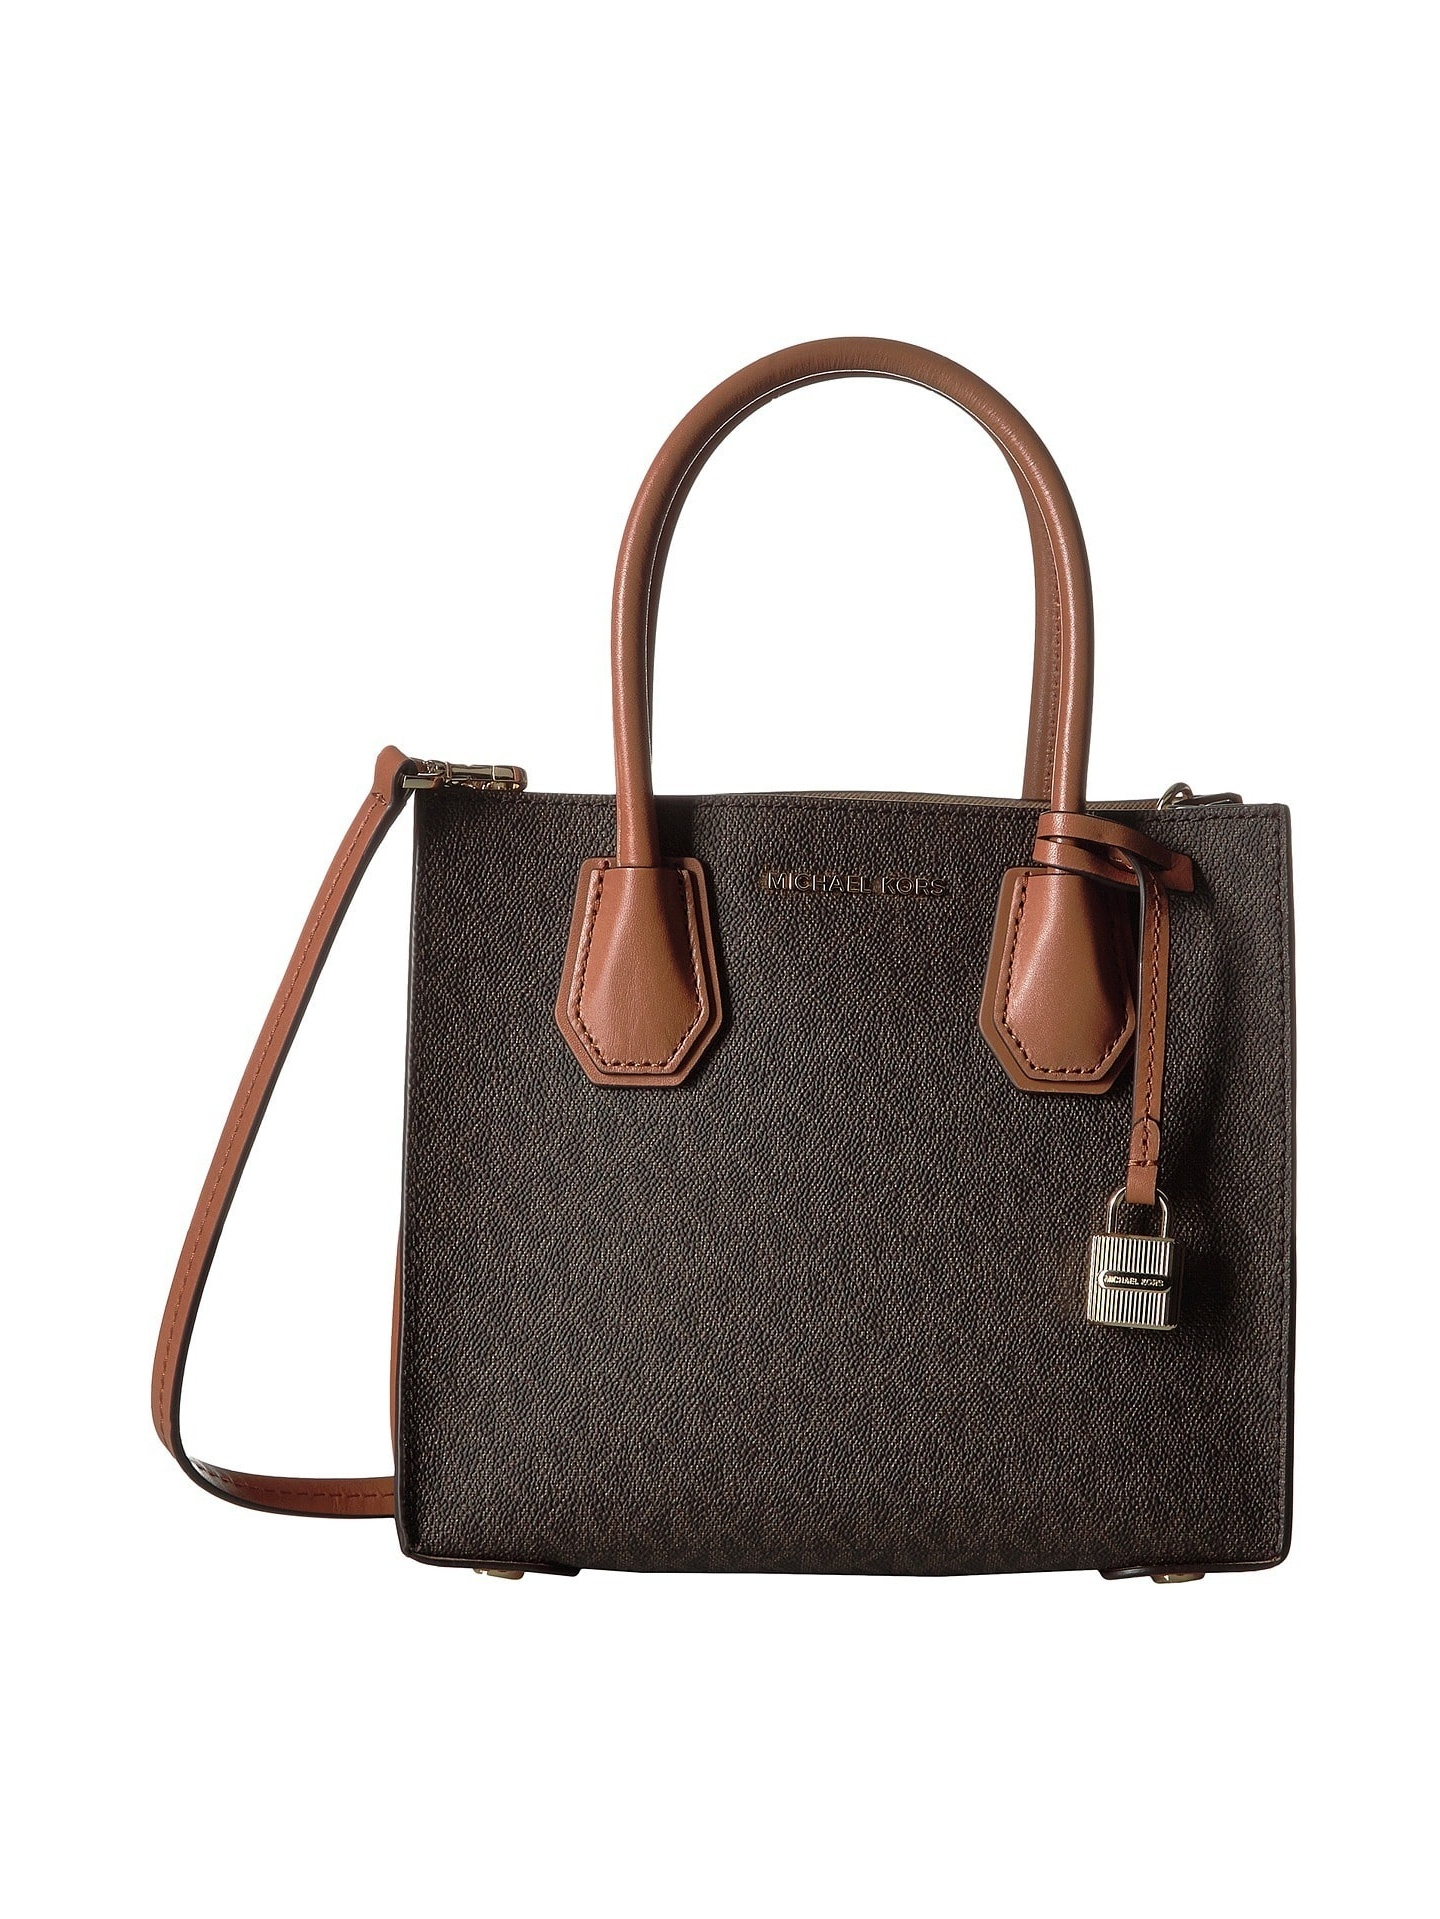 Michael Kors Studio Mercer Brown Signature Crossbody Handbag